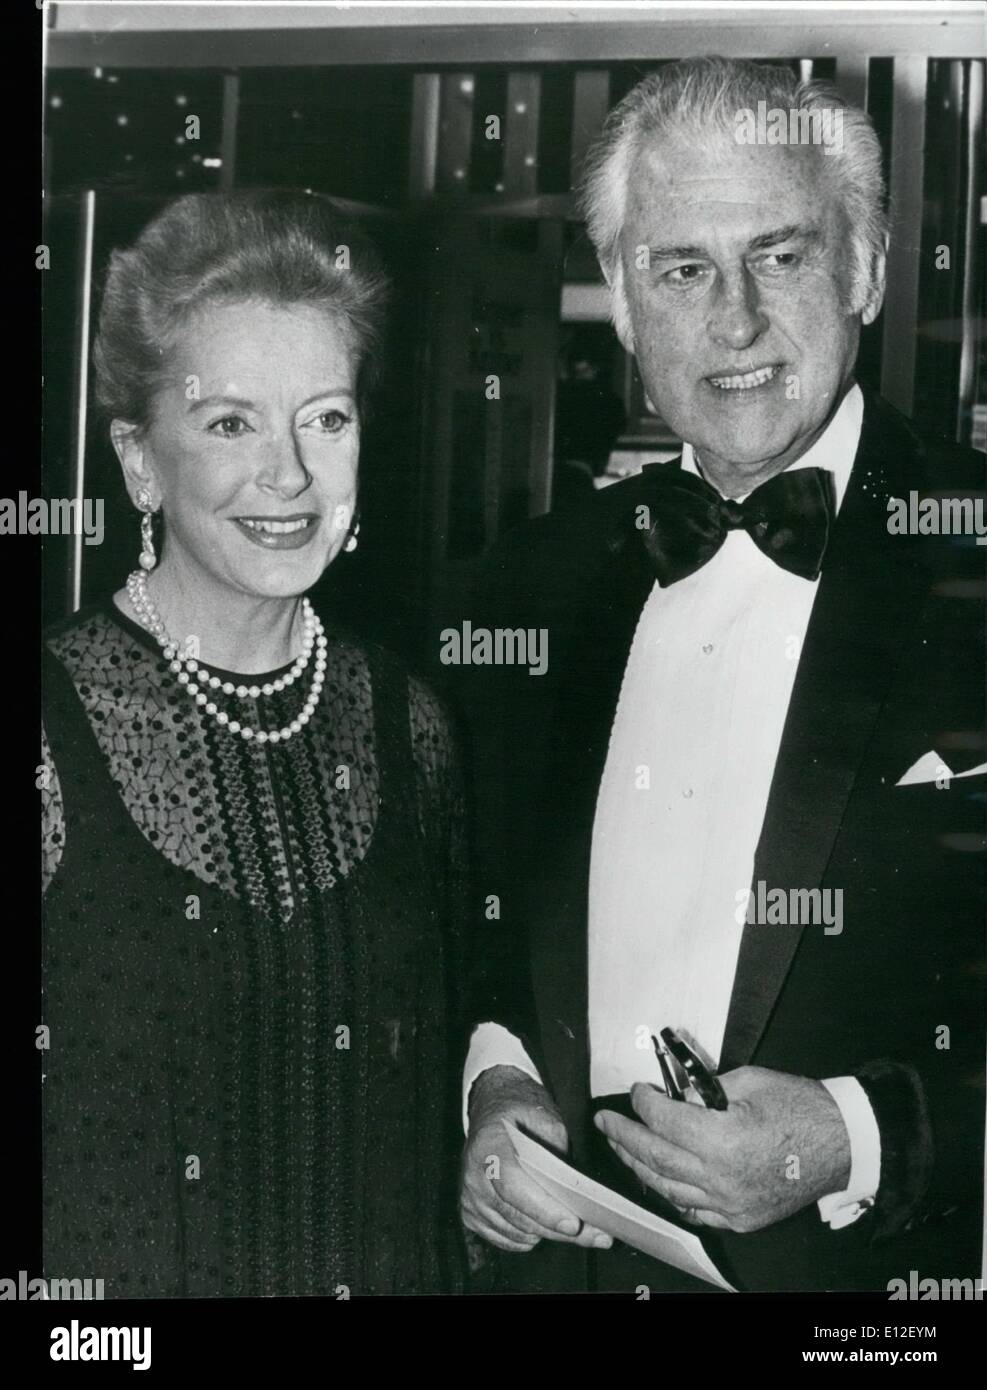 Dec. 21, 2011 - Stewart Granger & Deborah Kerr At Royal Film Premiere: A galaxy of stars were present at last night's Royal Film Performance of ''Kramer vs Kramer'' which was shown in the presence of the Queen and Prince Phillip. Among the guest celebrities were Stewart Granger and Deborah Kerr. Photo shows. Stewart Granger and Deborah Kerr at last night's premiere at the Odeon, Leicester Square. - Stock Image